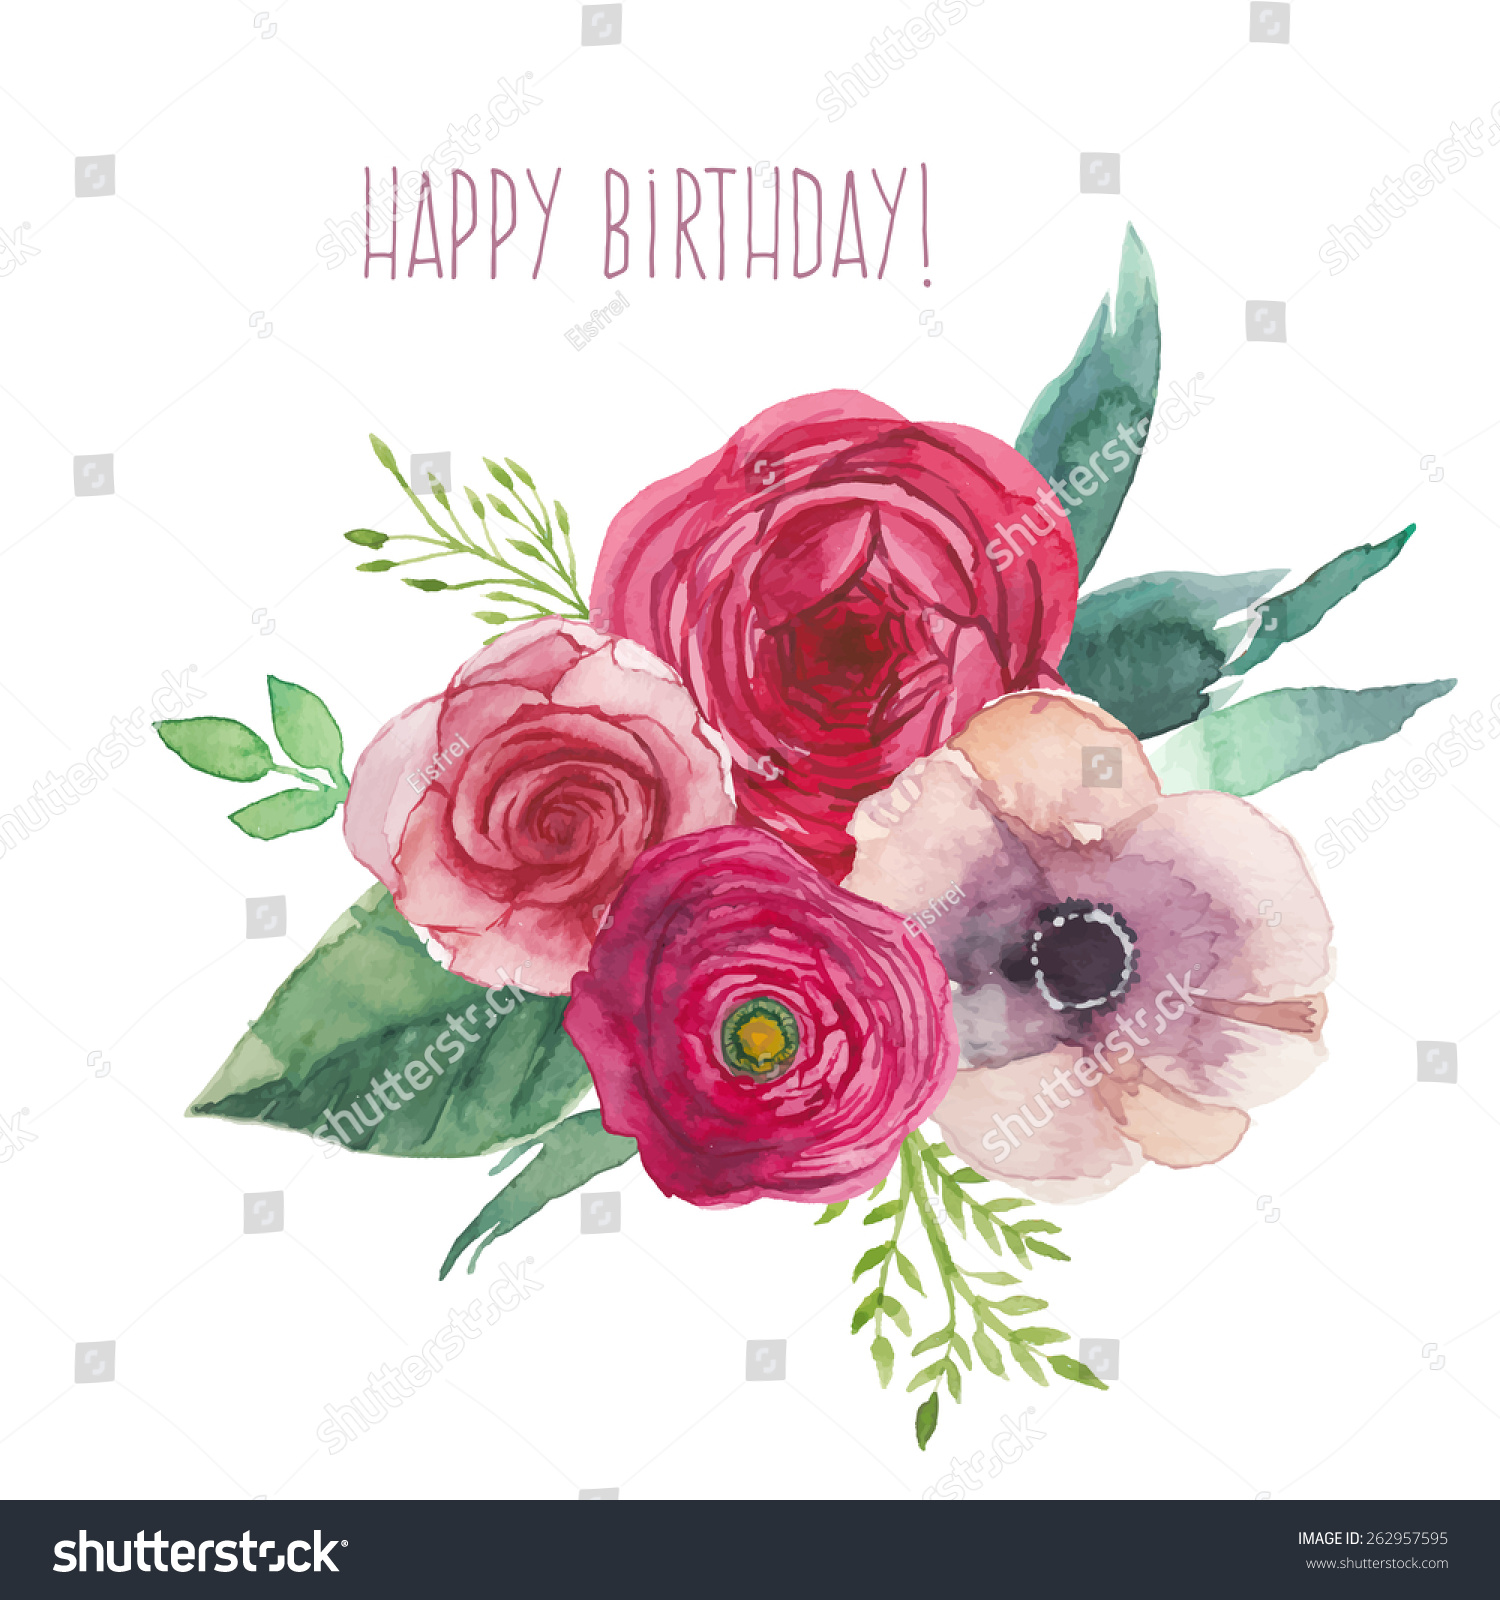 Watercolor happy birthday card flowers bouquet stock vector 2018 watercolor happy birthday card with flowers bouquet hand painted isolated posy with roses ranunculus izmirmasajfo